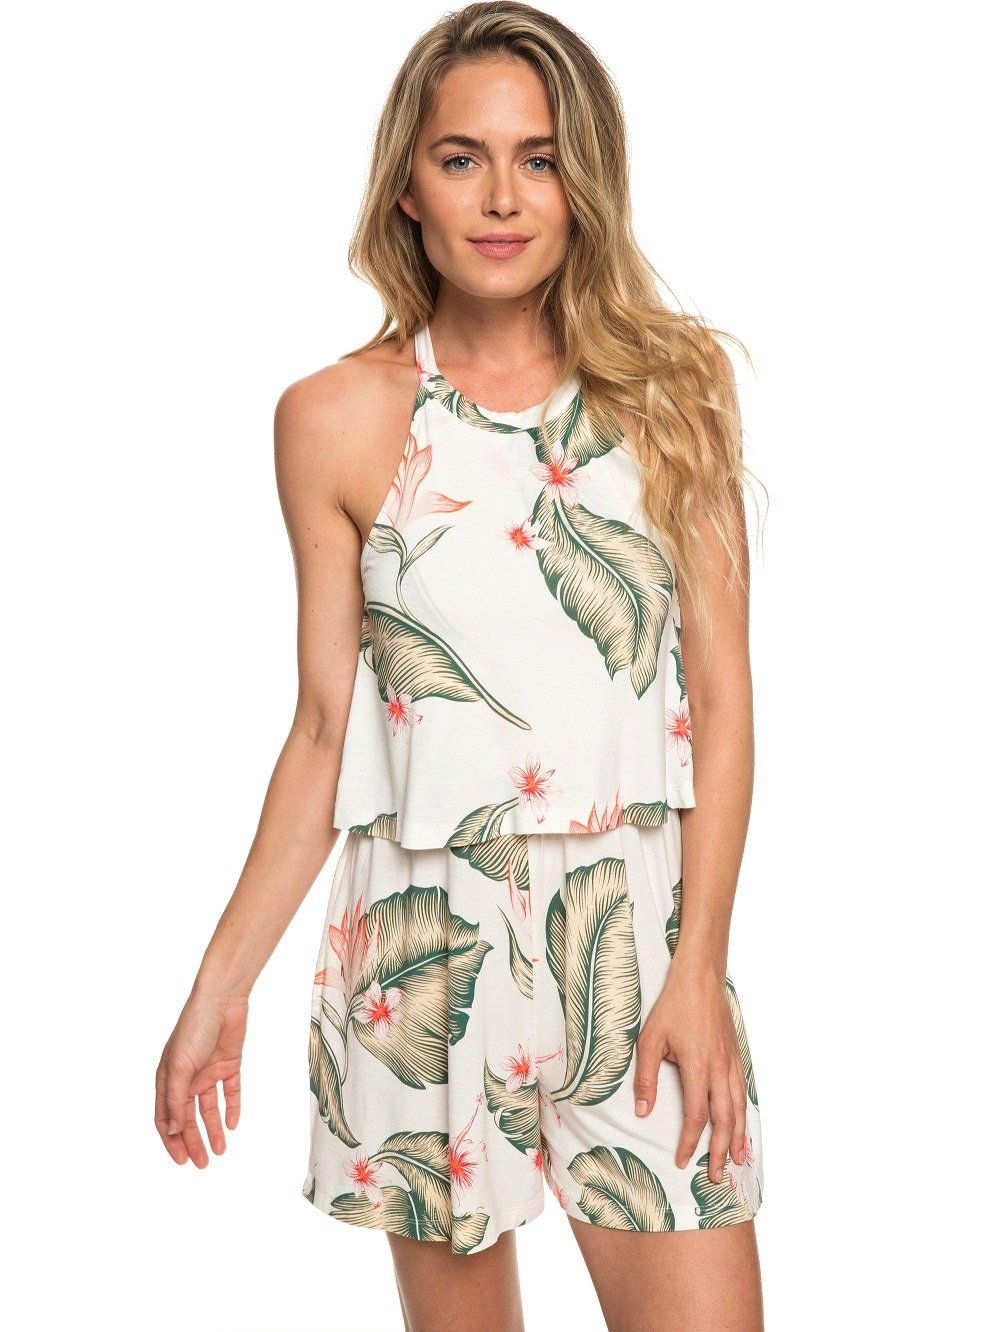 ROXY WOMEN'S ROMPER FAVORITE SONG